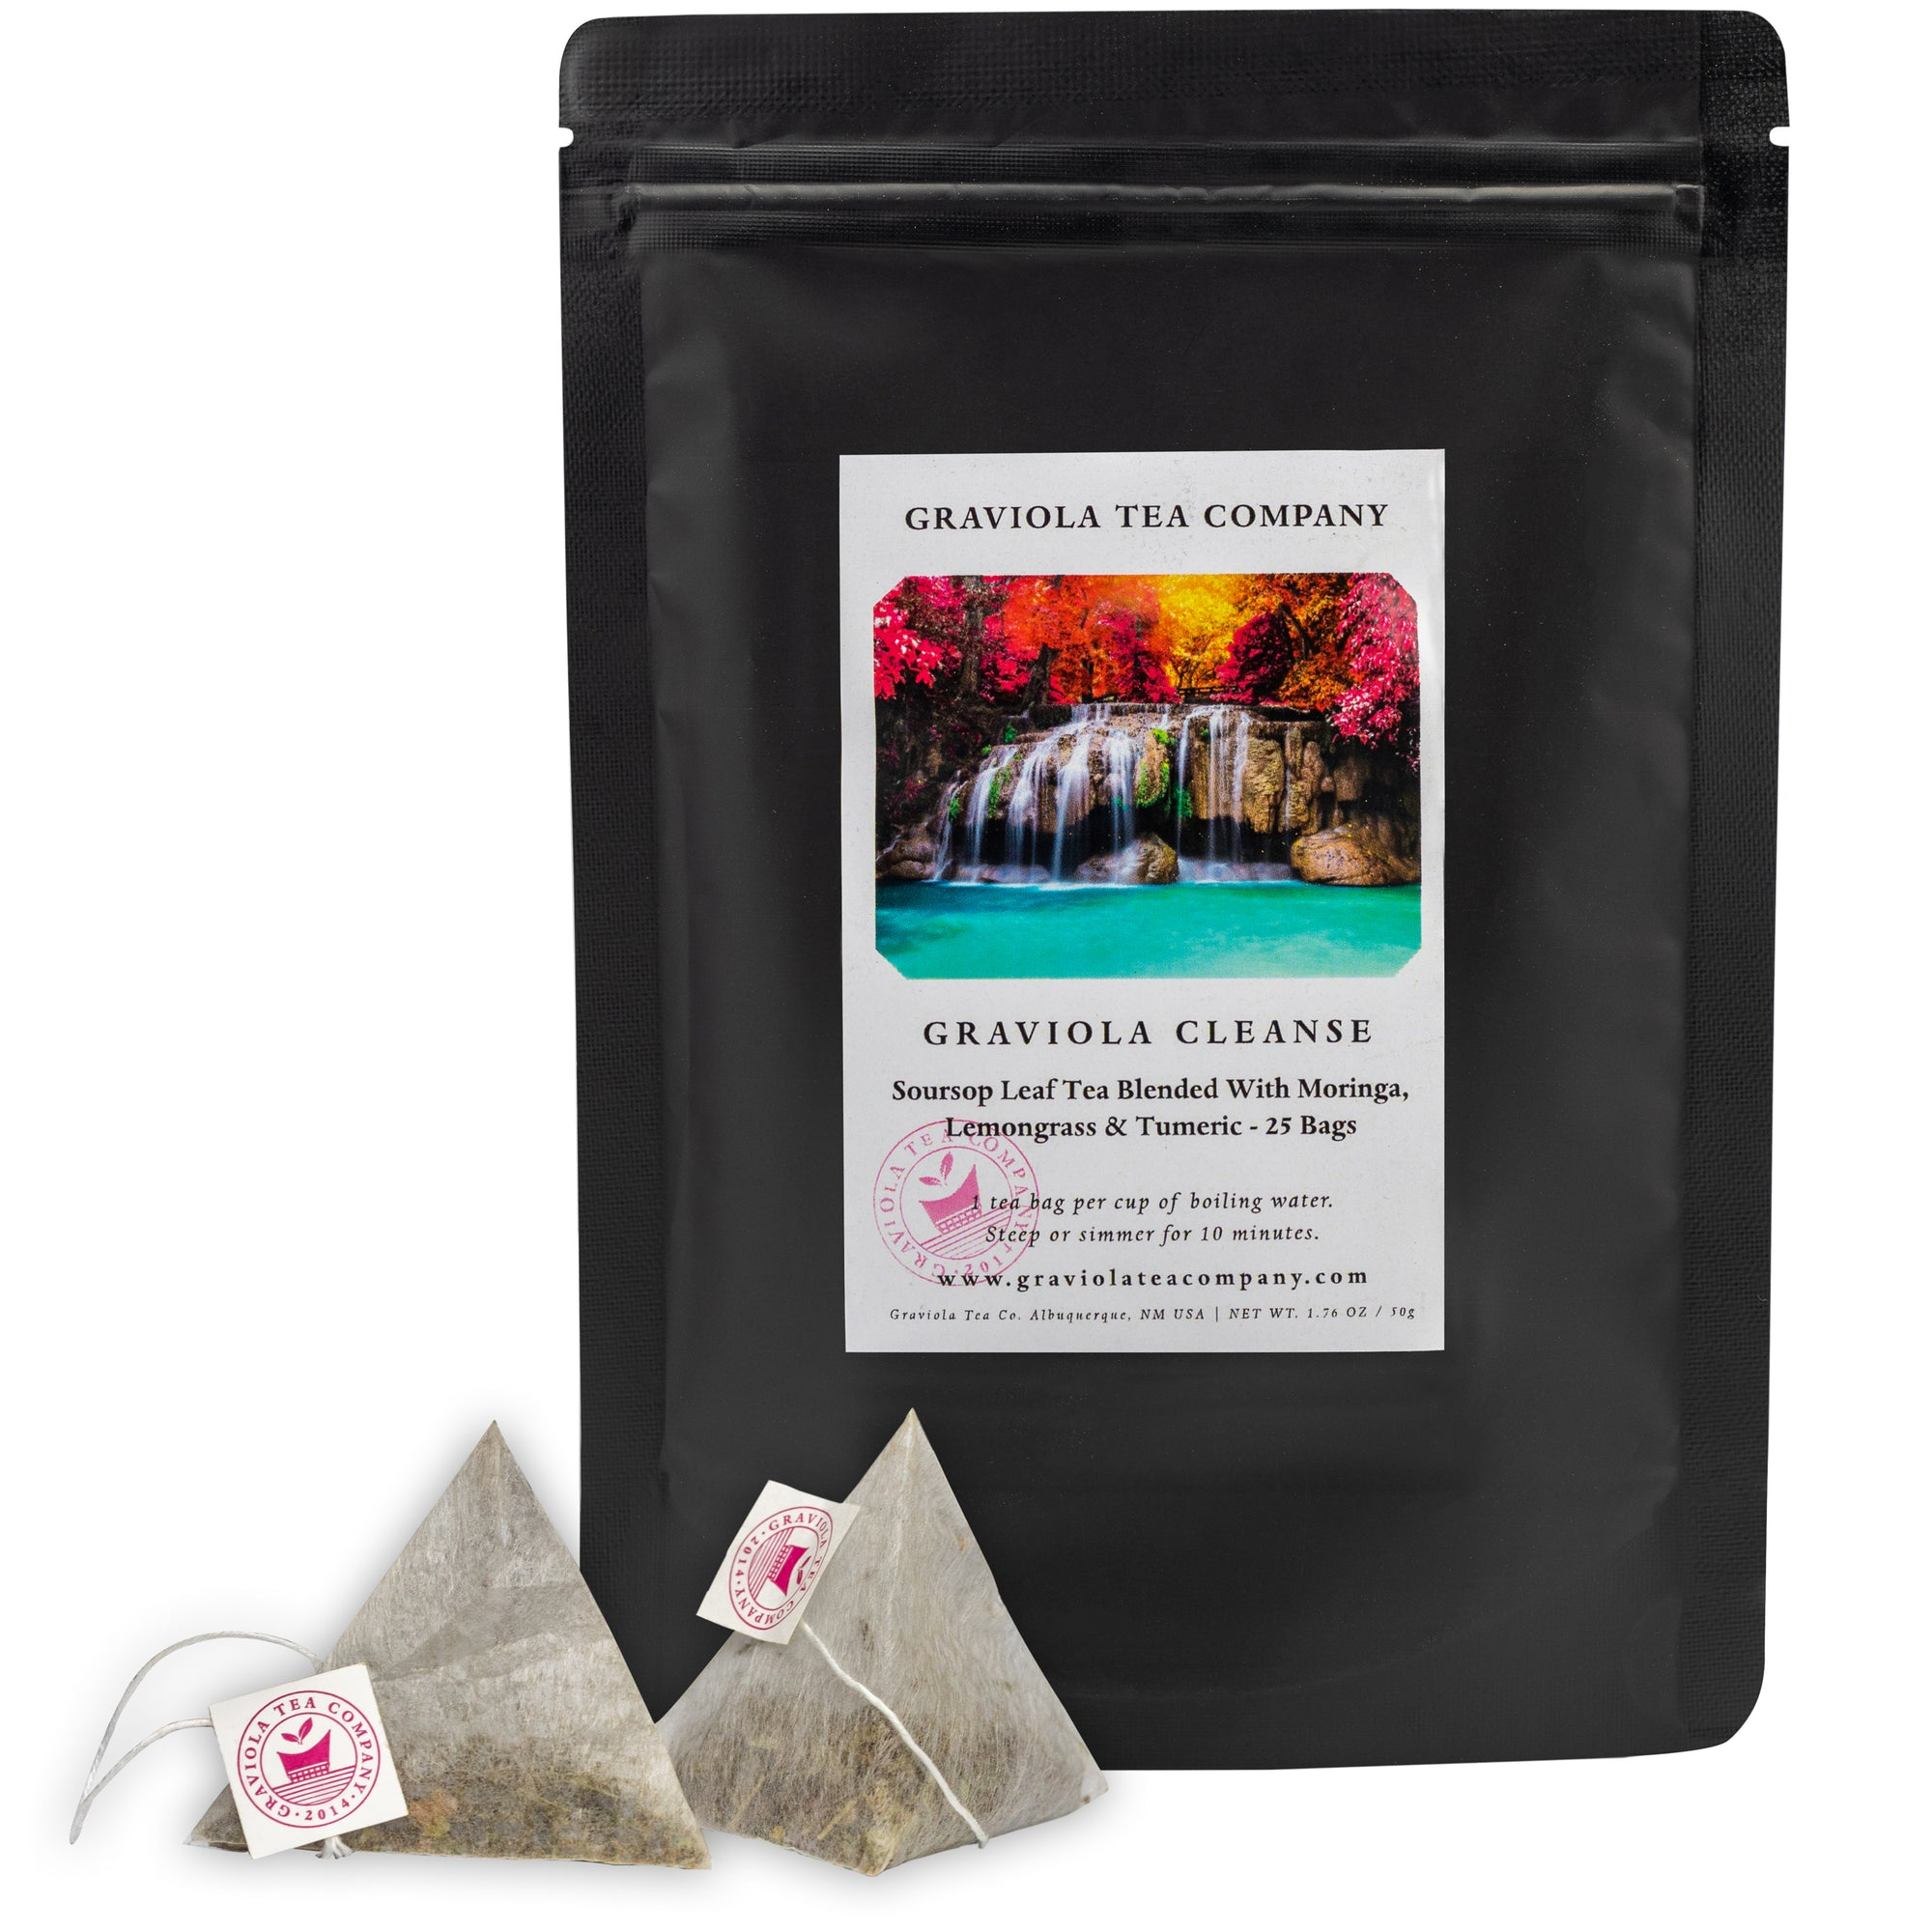 Graviola Cleanse - Soursop Tea Blended With Moringa, Lemongrass & Turmeric